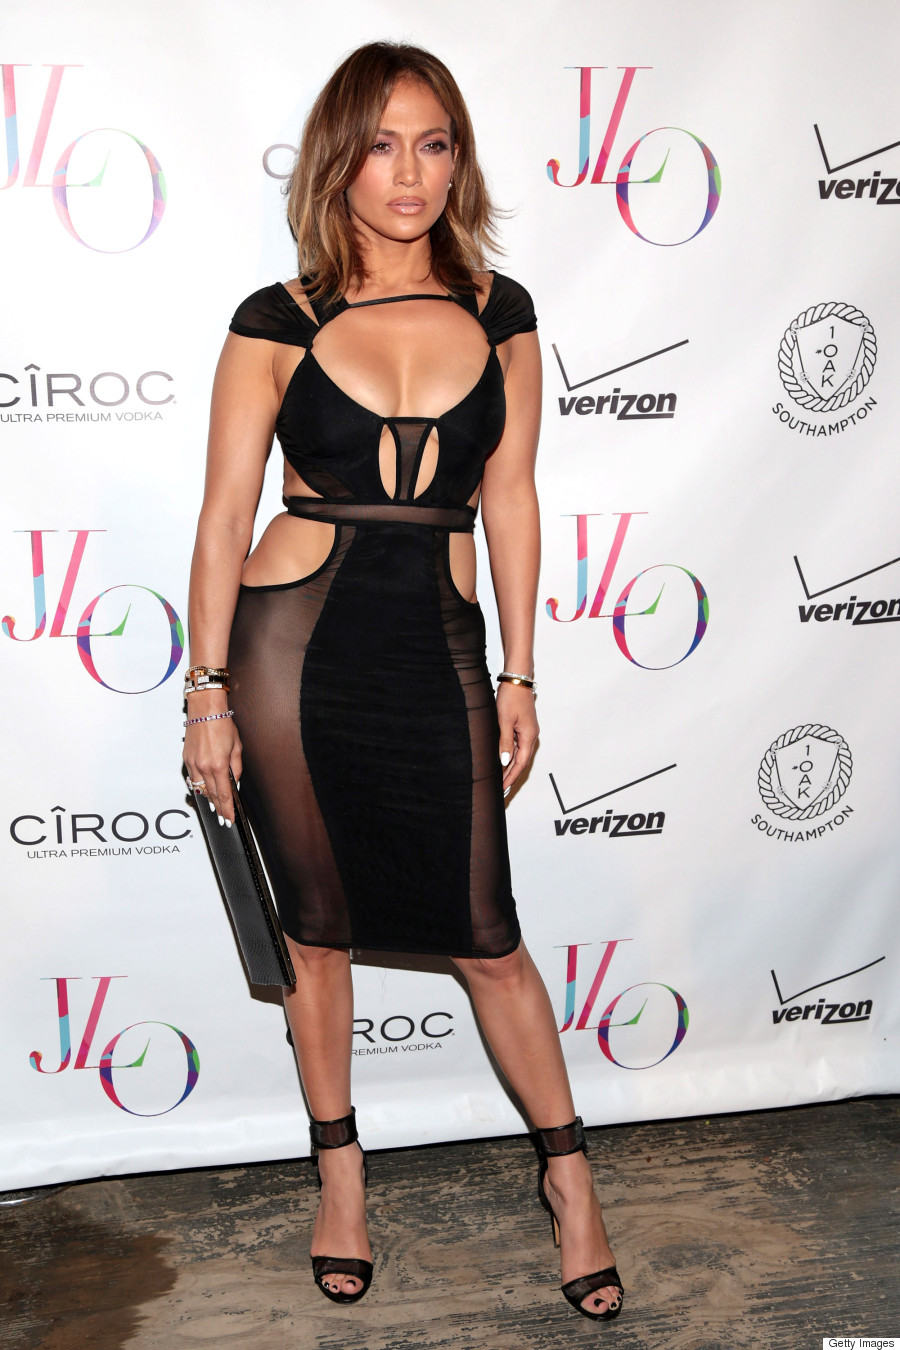 jennifer lopez birthday dress